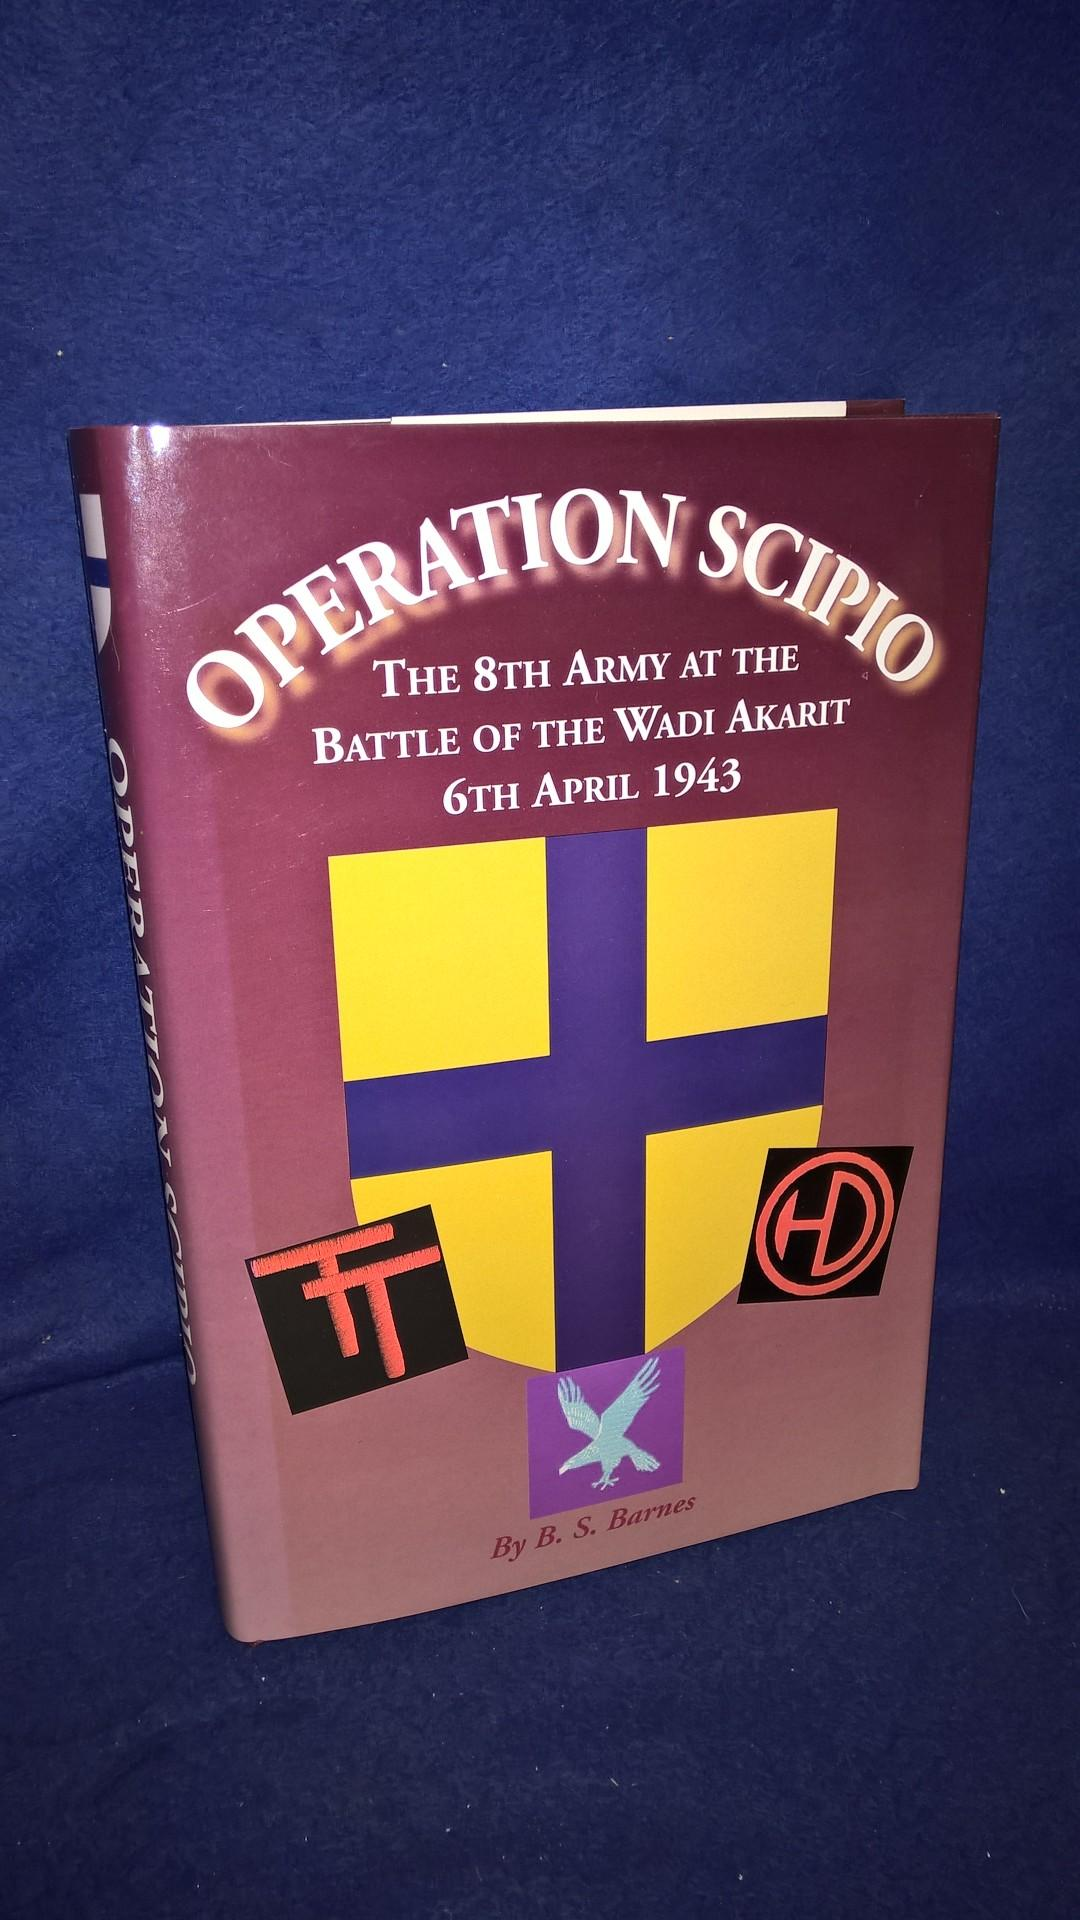 Operation Scipio (The 8th Army at the Battle of the Wadi-Akarit, 6th April 1943, Tunisia)